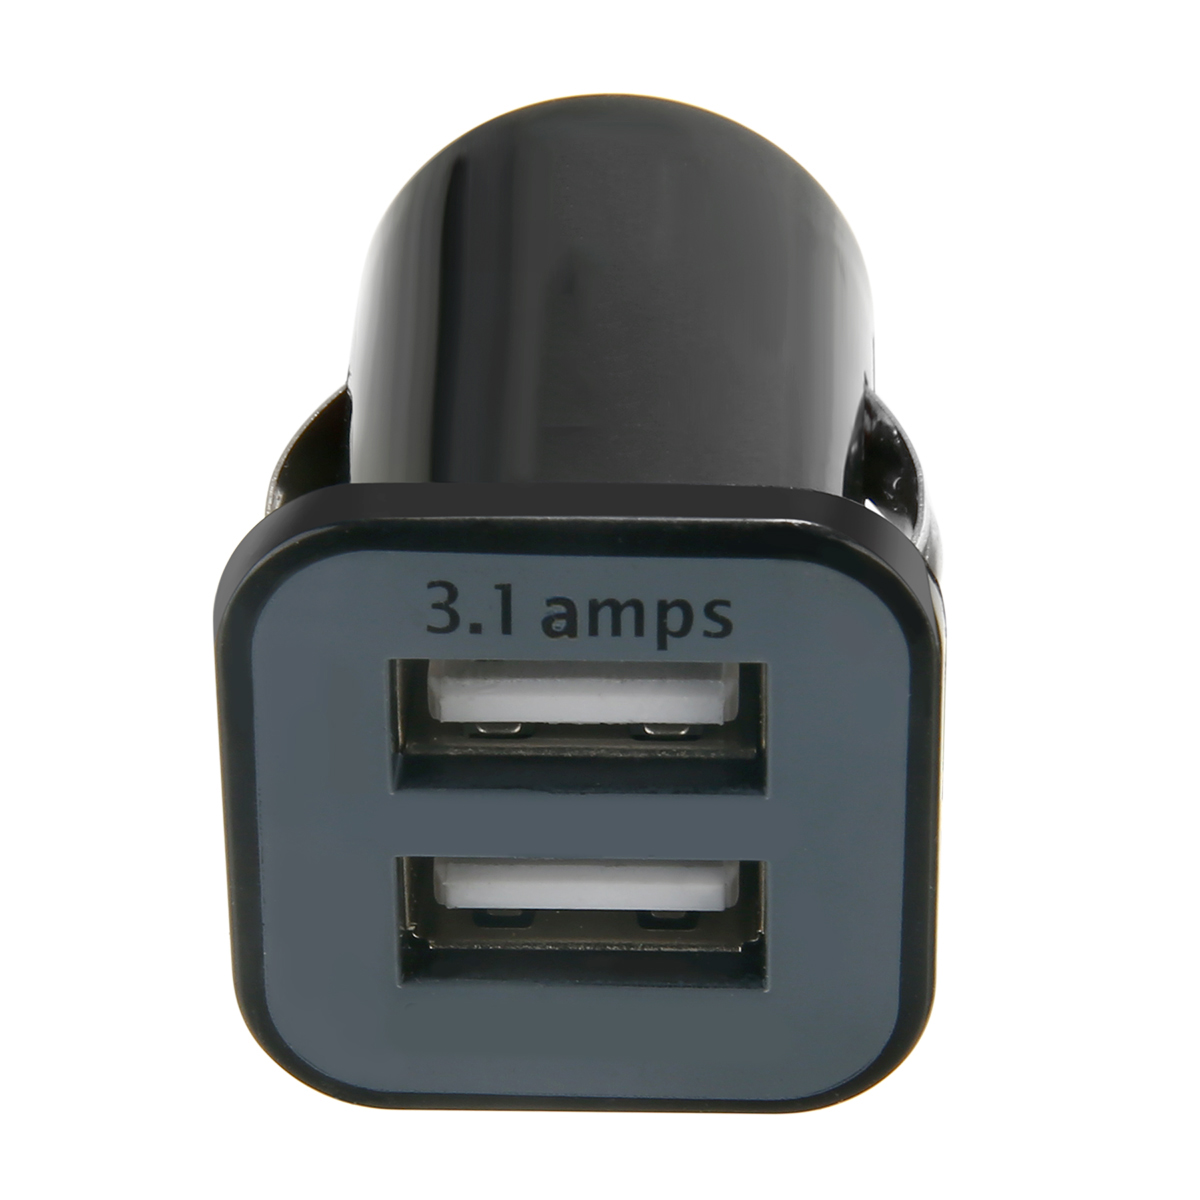 New Arrival 1pc Black Car Truck Dual 2 Port USB Mini Charger Adapter for i-Phone i-Pad S-amsung Cellphones MP3